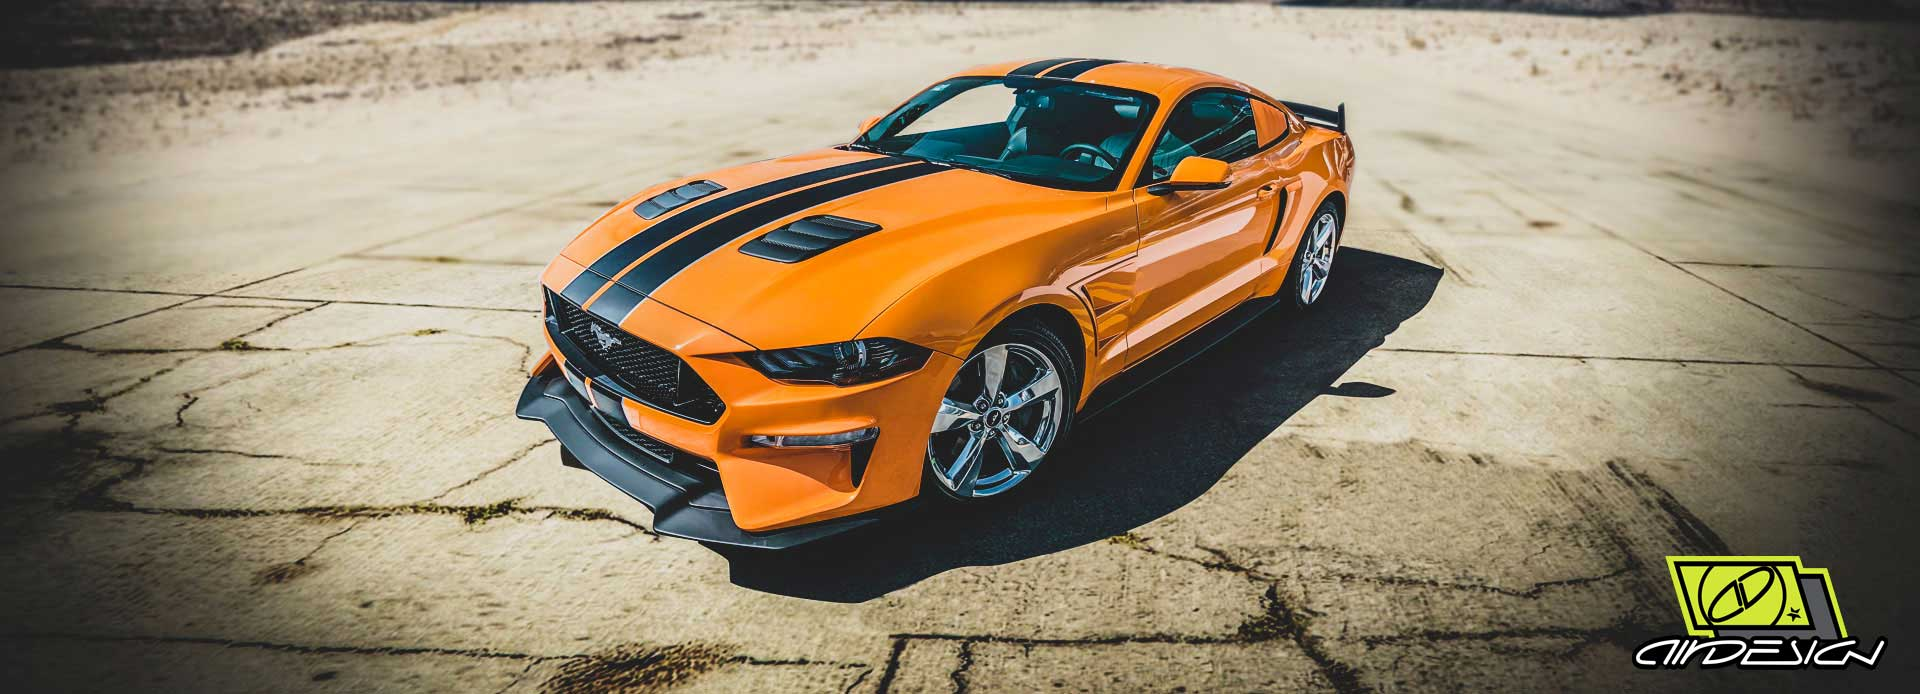 Air Design Ford Mustang